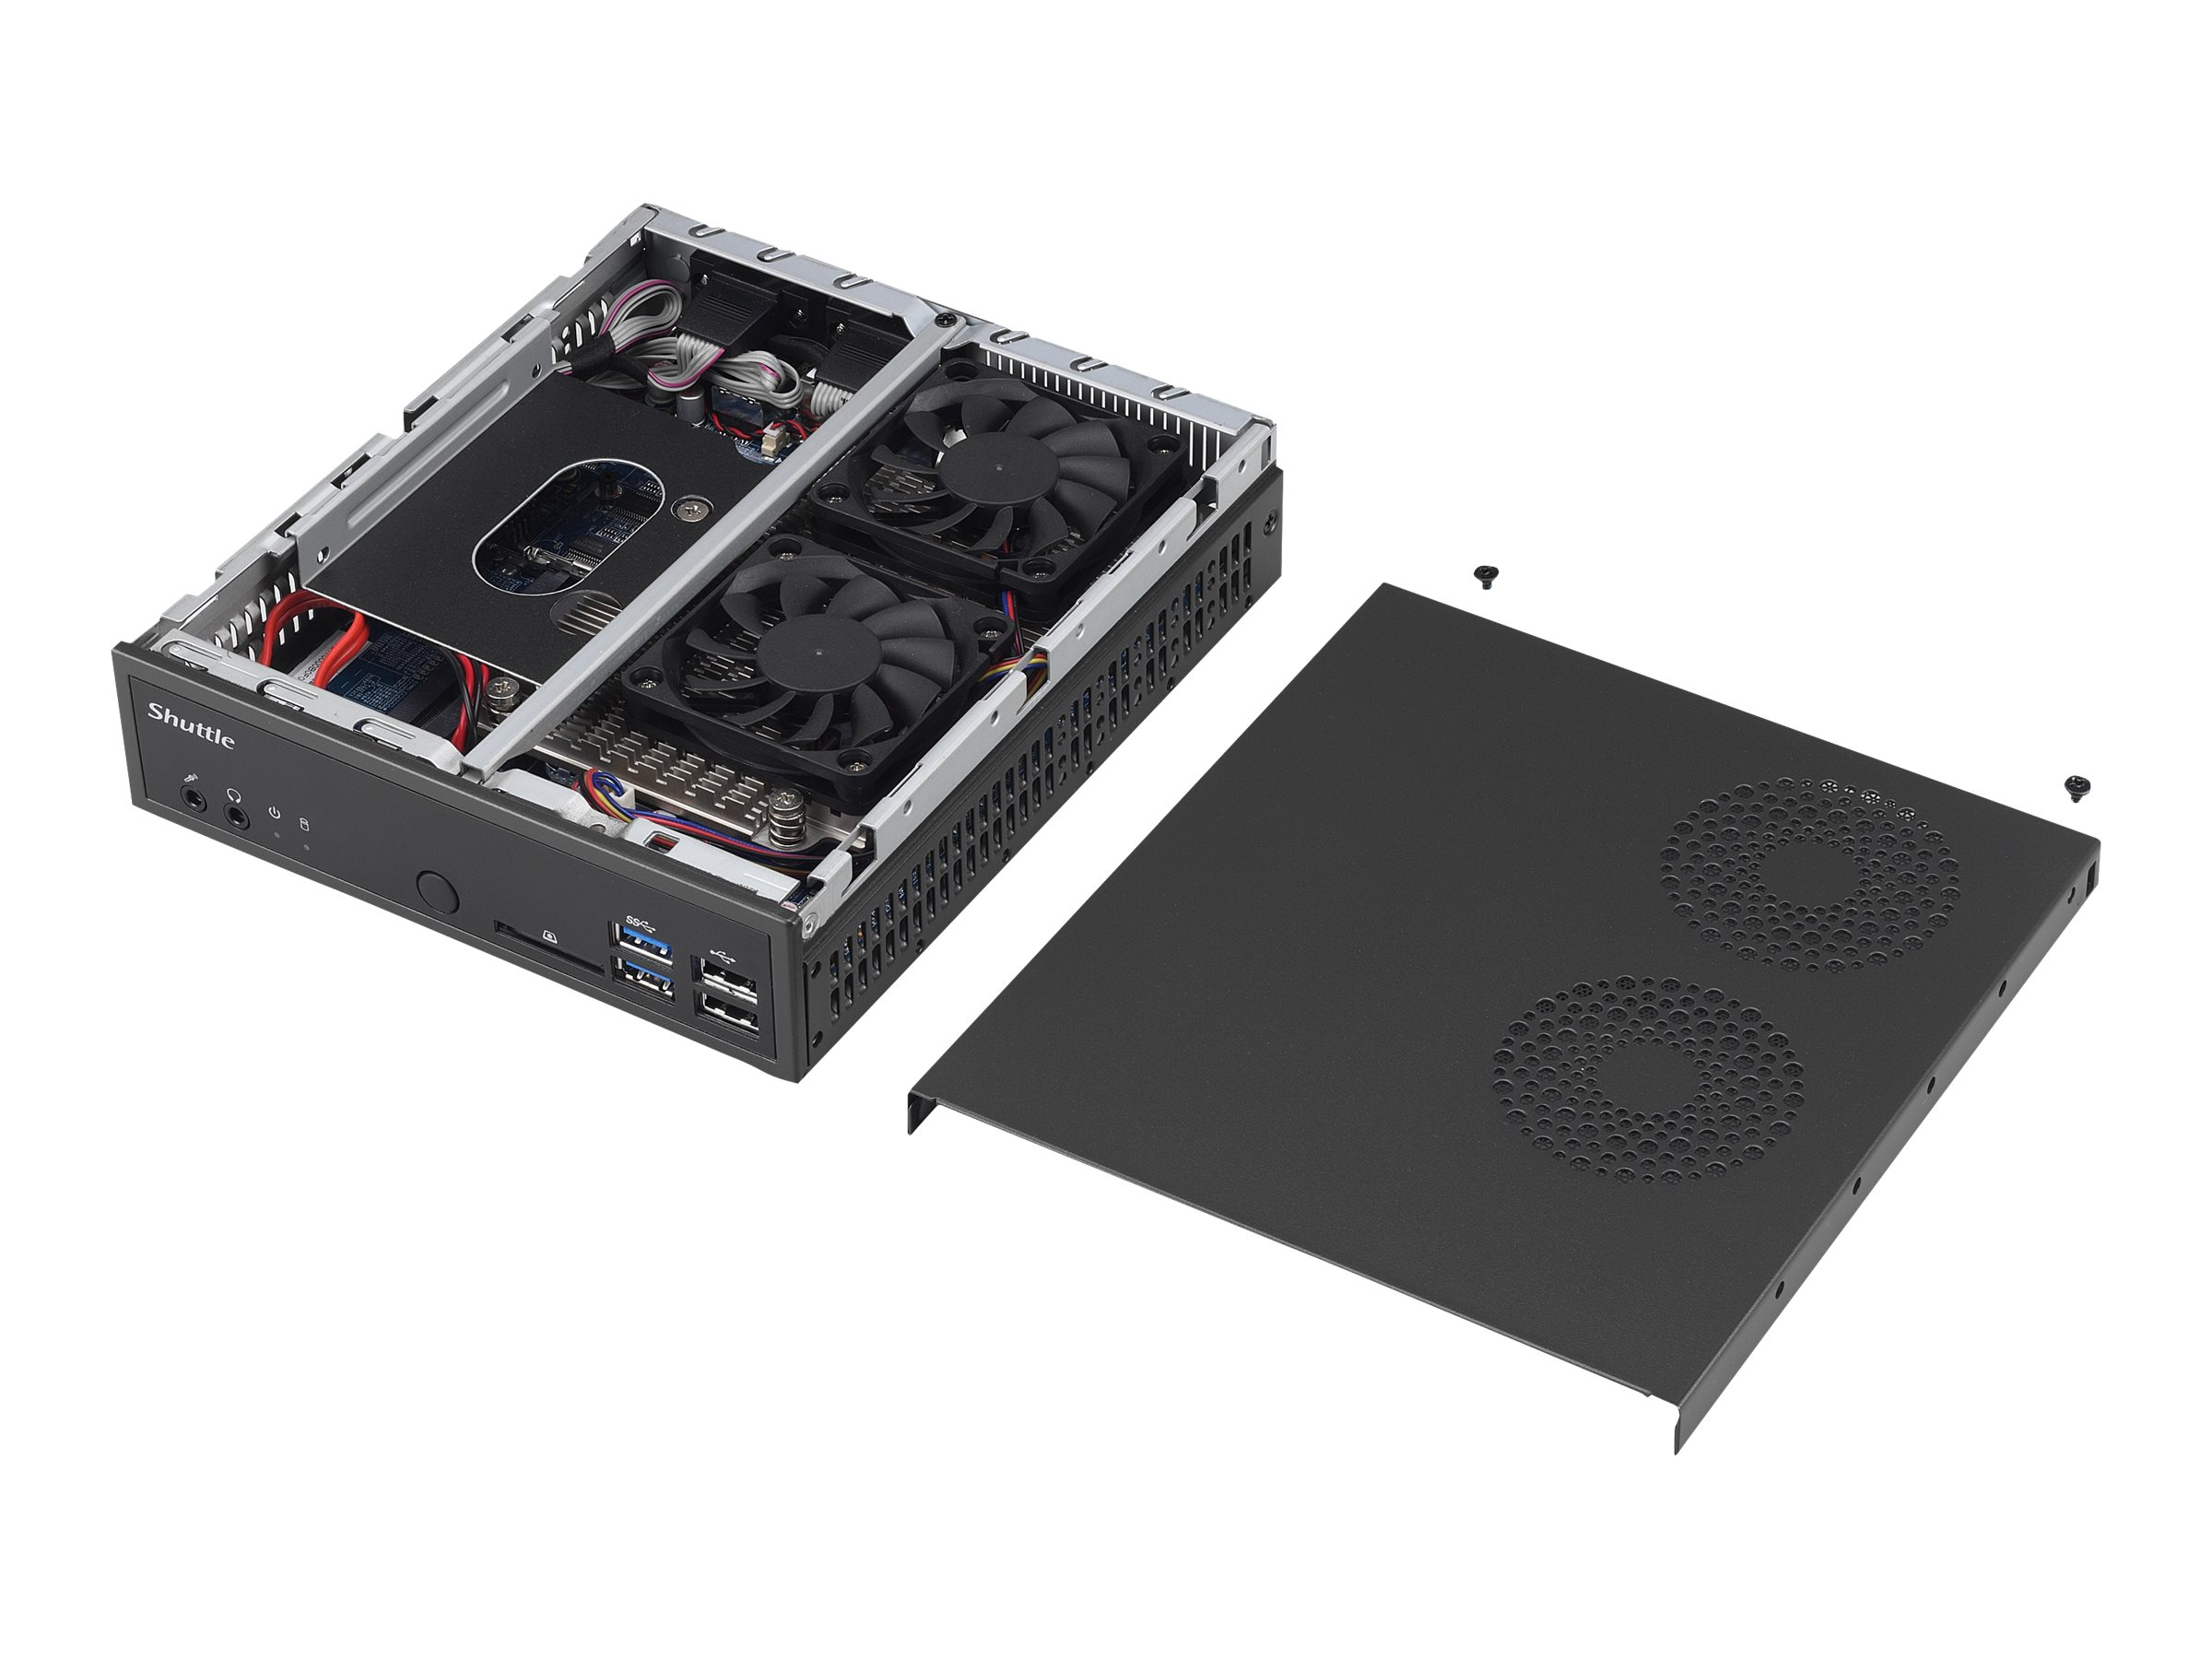 Shuttle XPC slim DH170 - Barebone - Slim-PC - LGA1151 Socket - Intel H170 Express - GigE